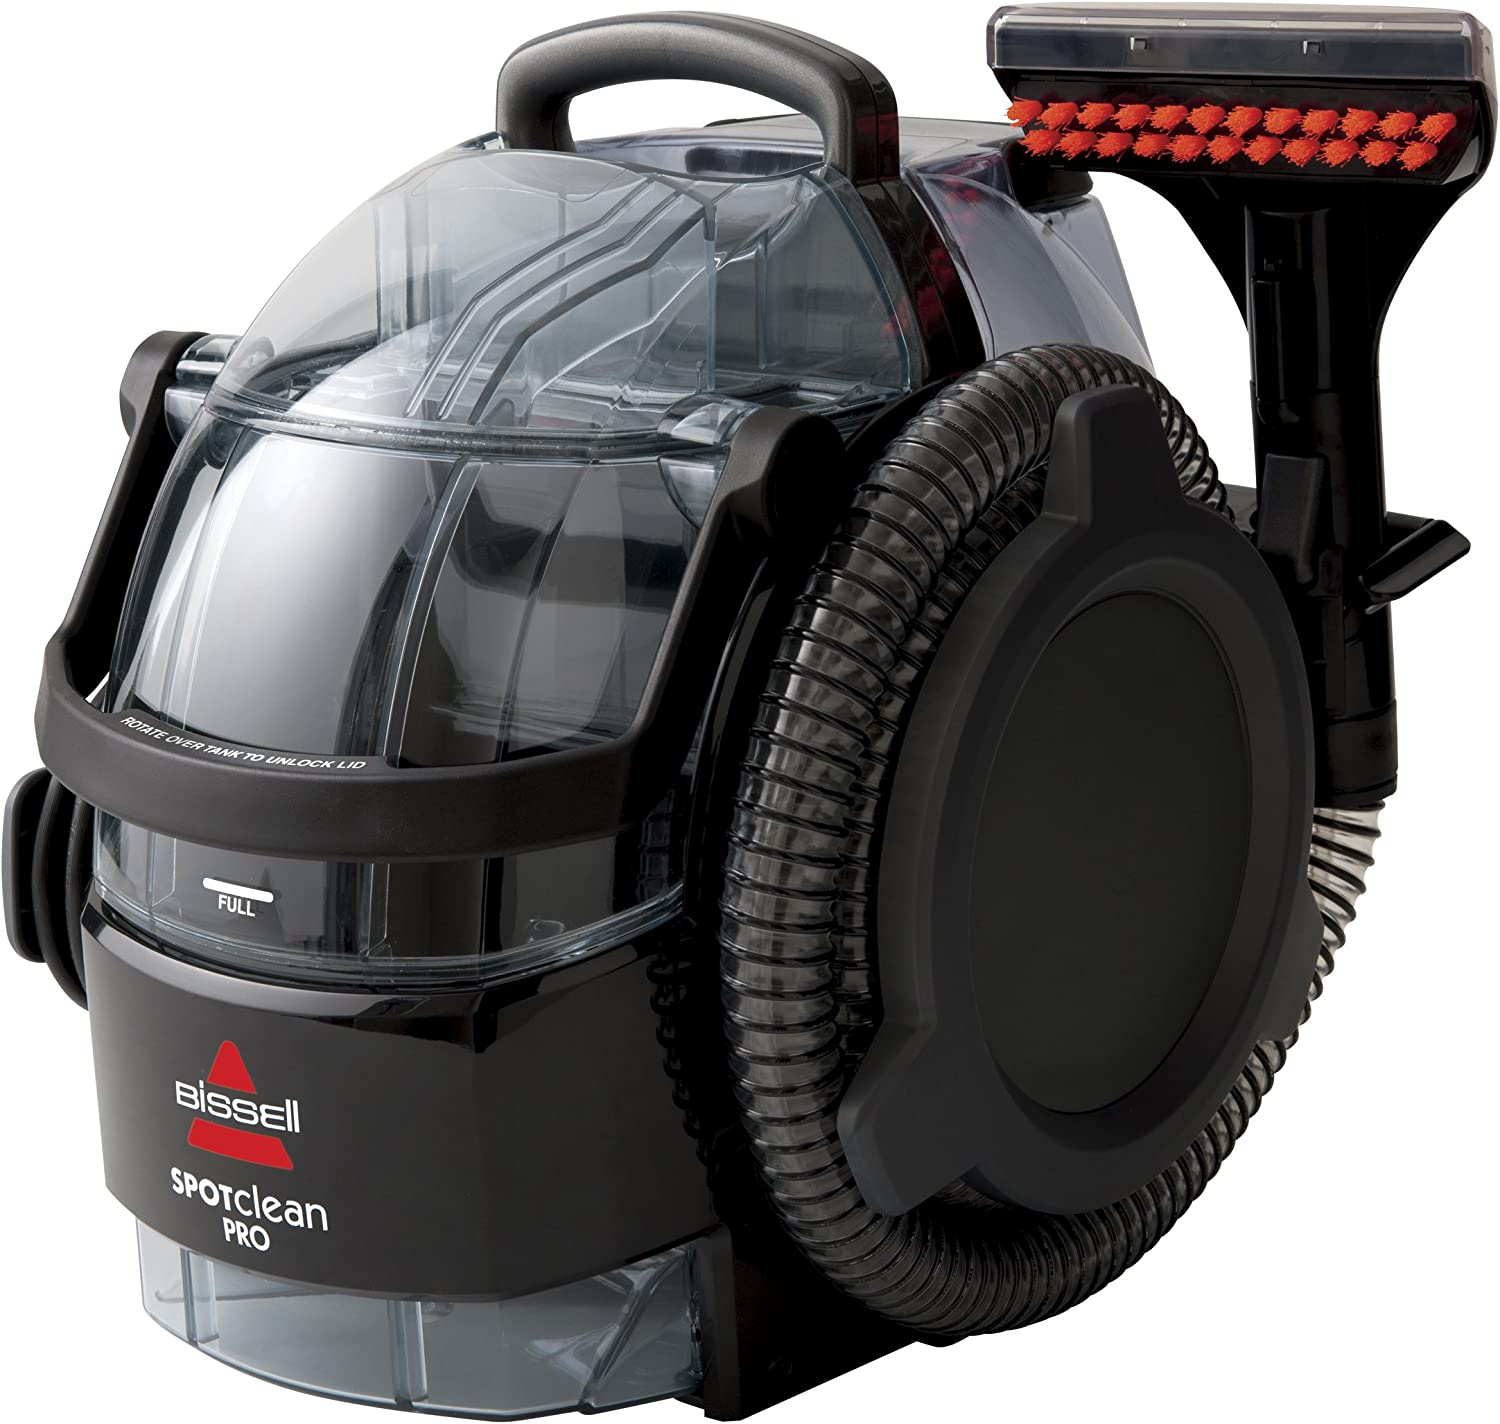 Best Bissell vacuum for pet